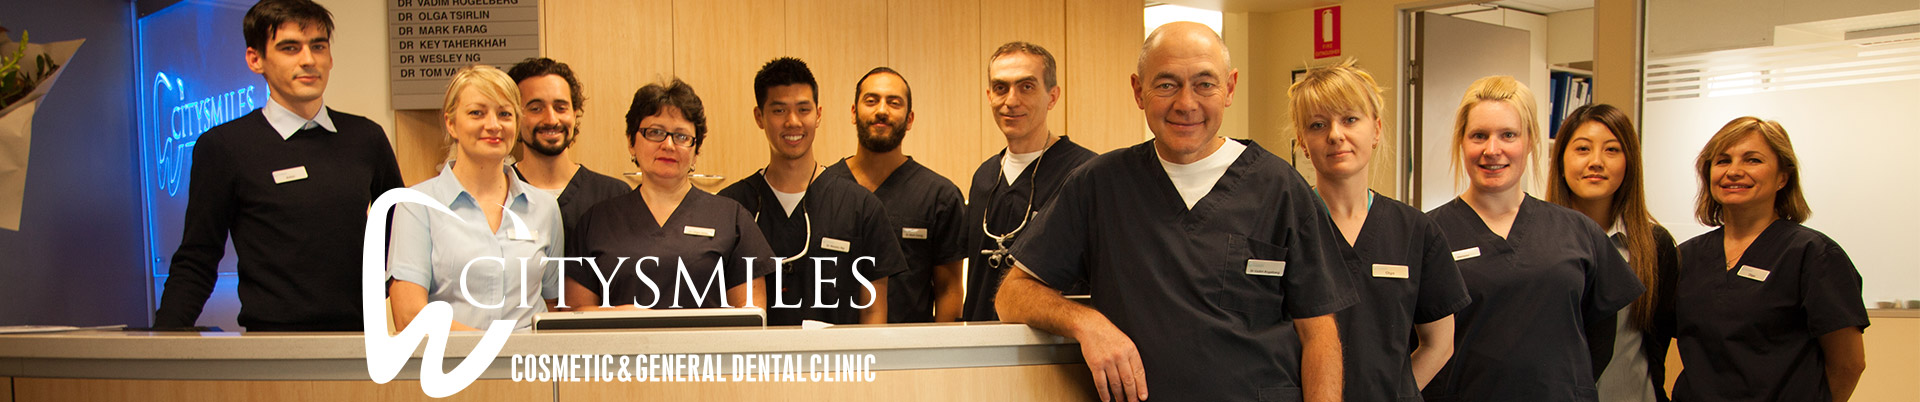 City Smiles team - Cosmetic and General Dentistry and Dental Implants Melbourne